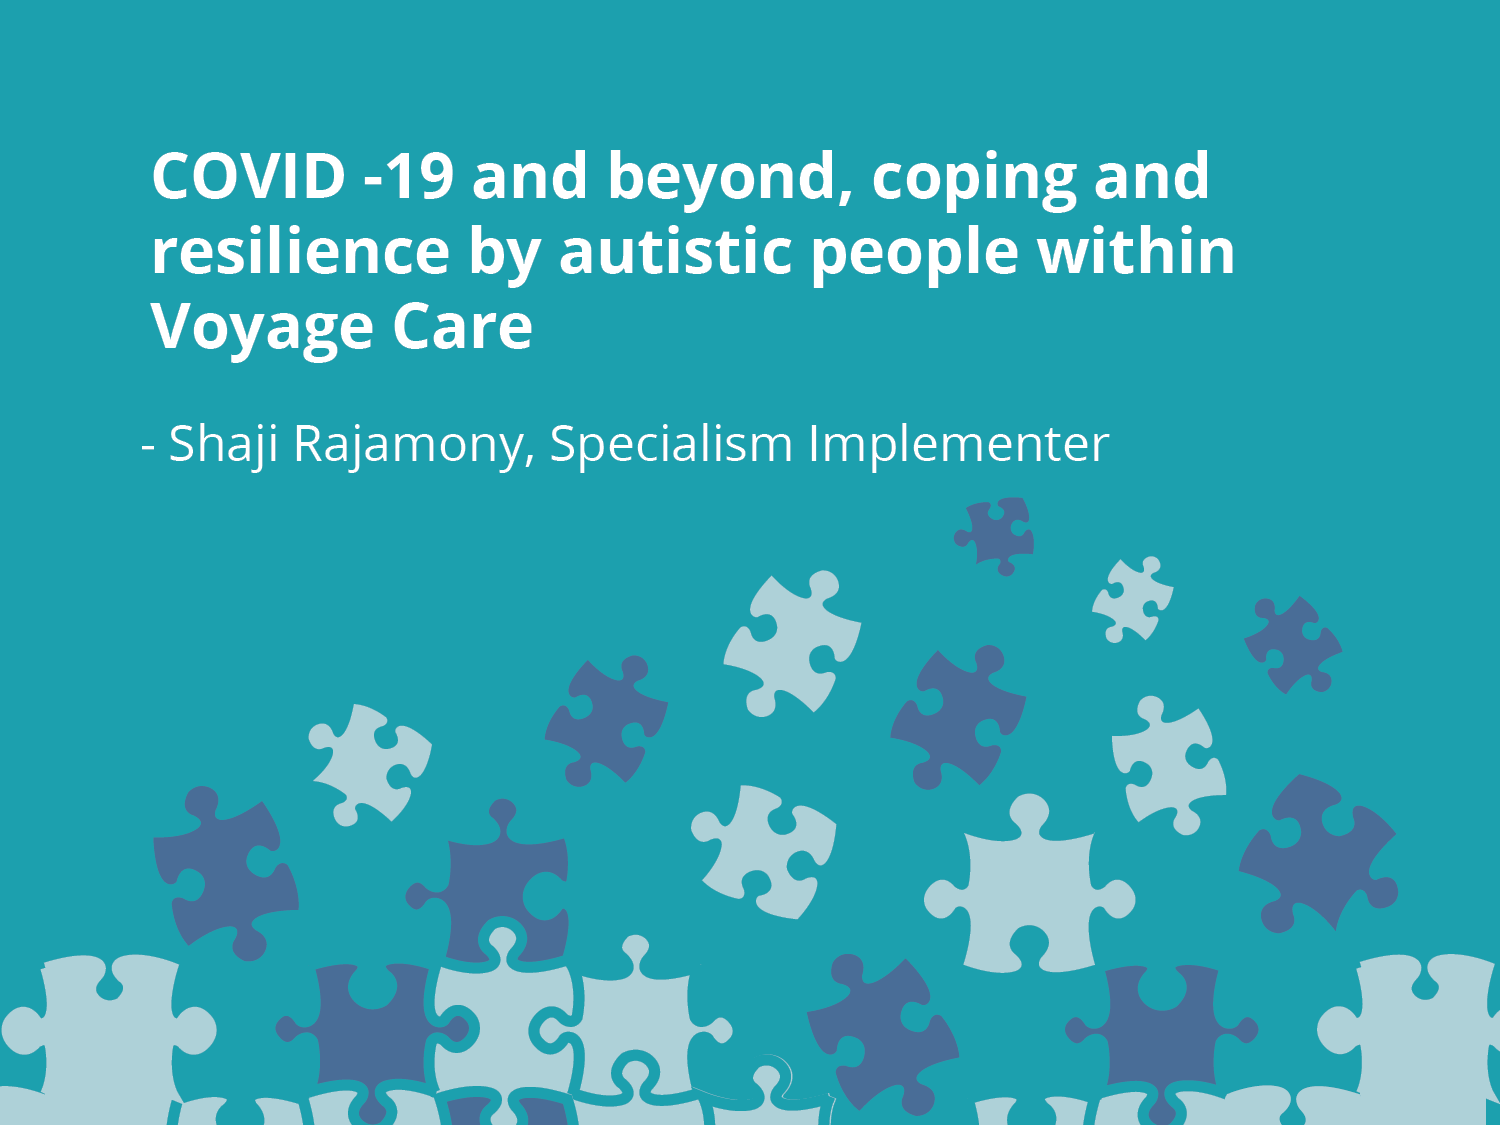 COVID -19 and beyond, coping and resilience by autistic people within Voyage Care